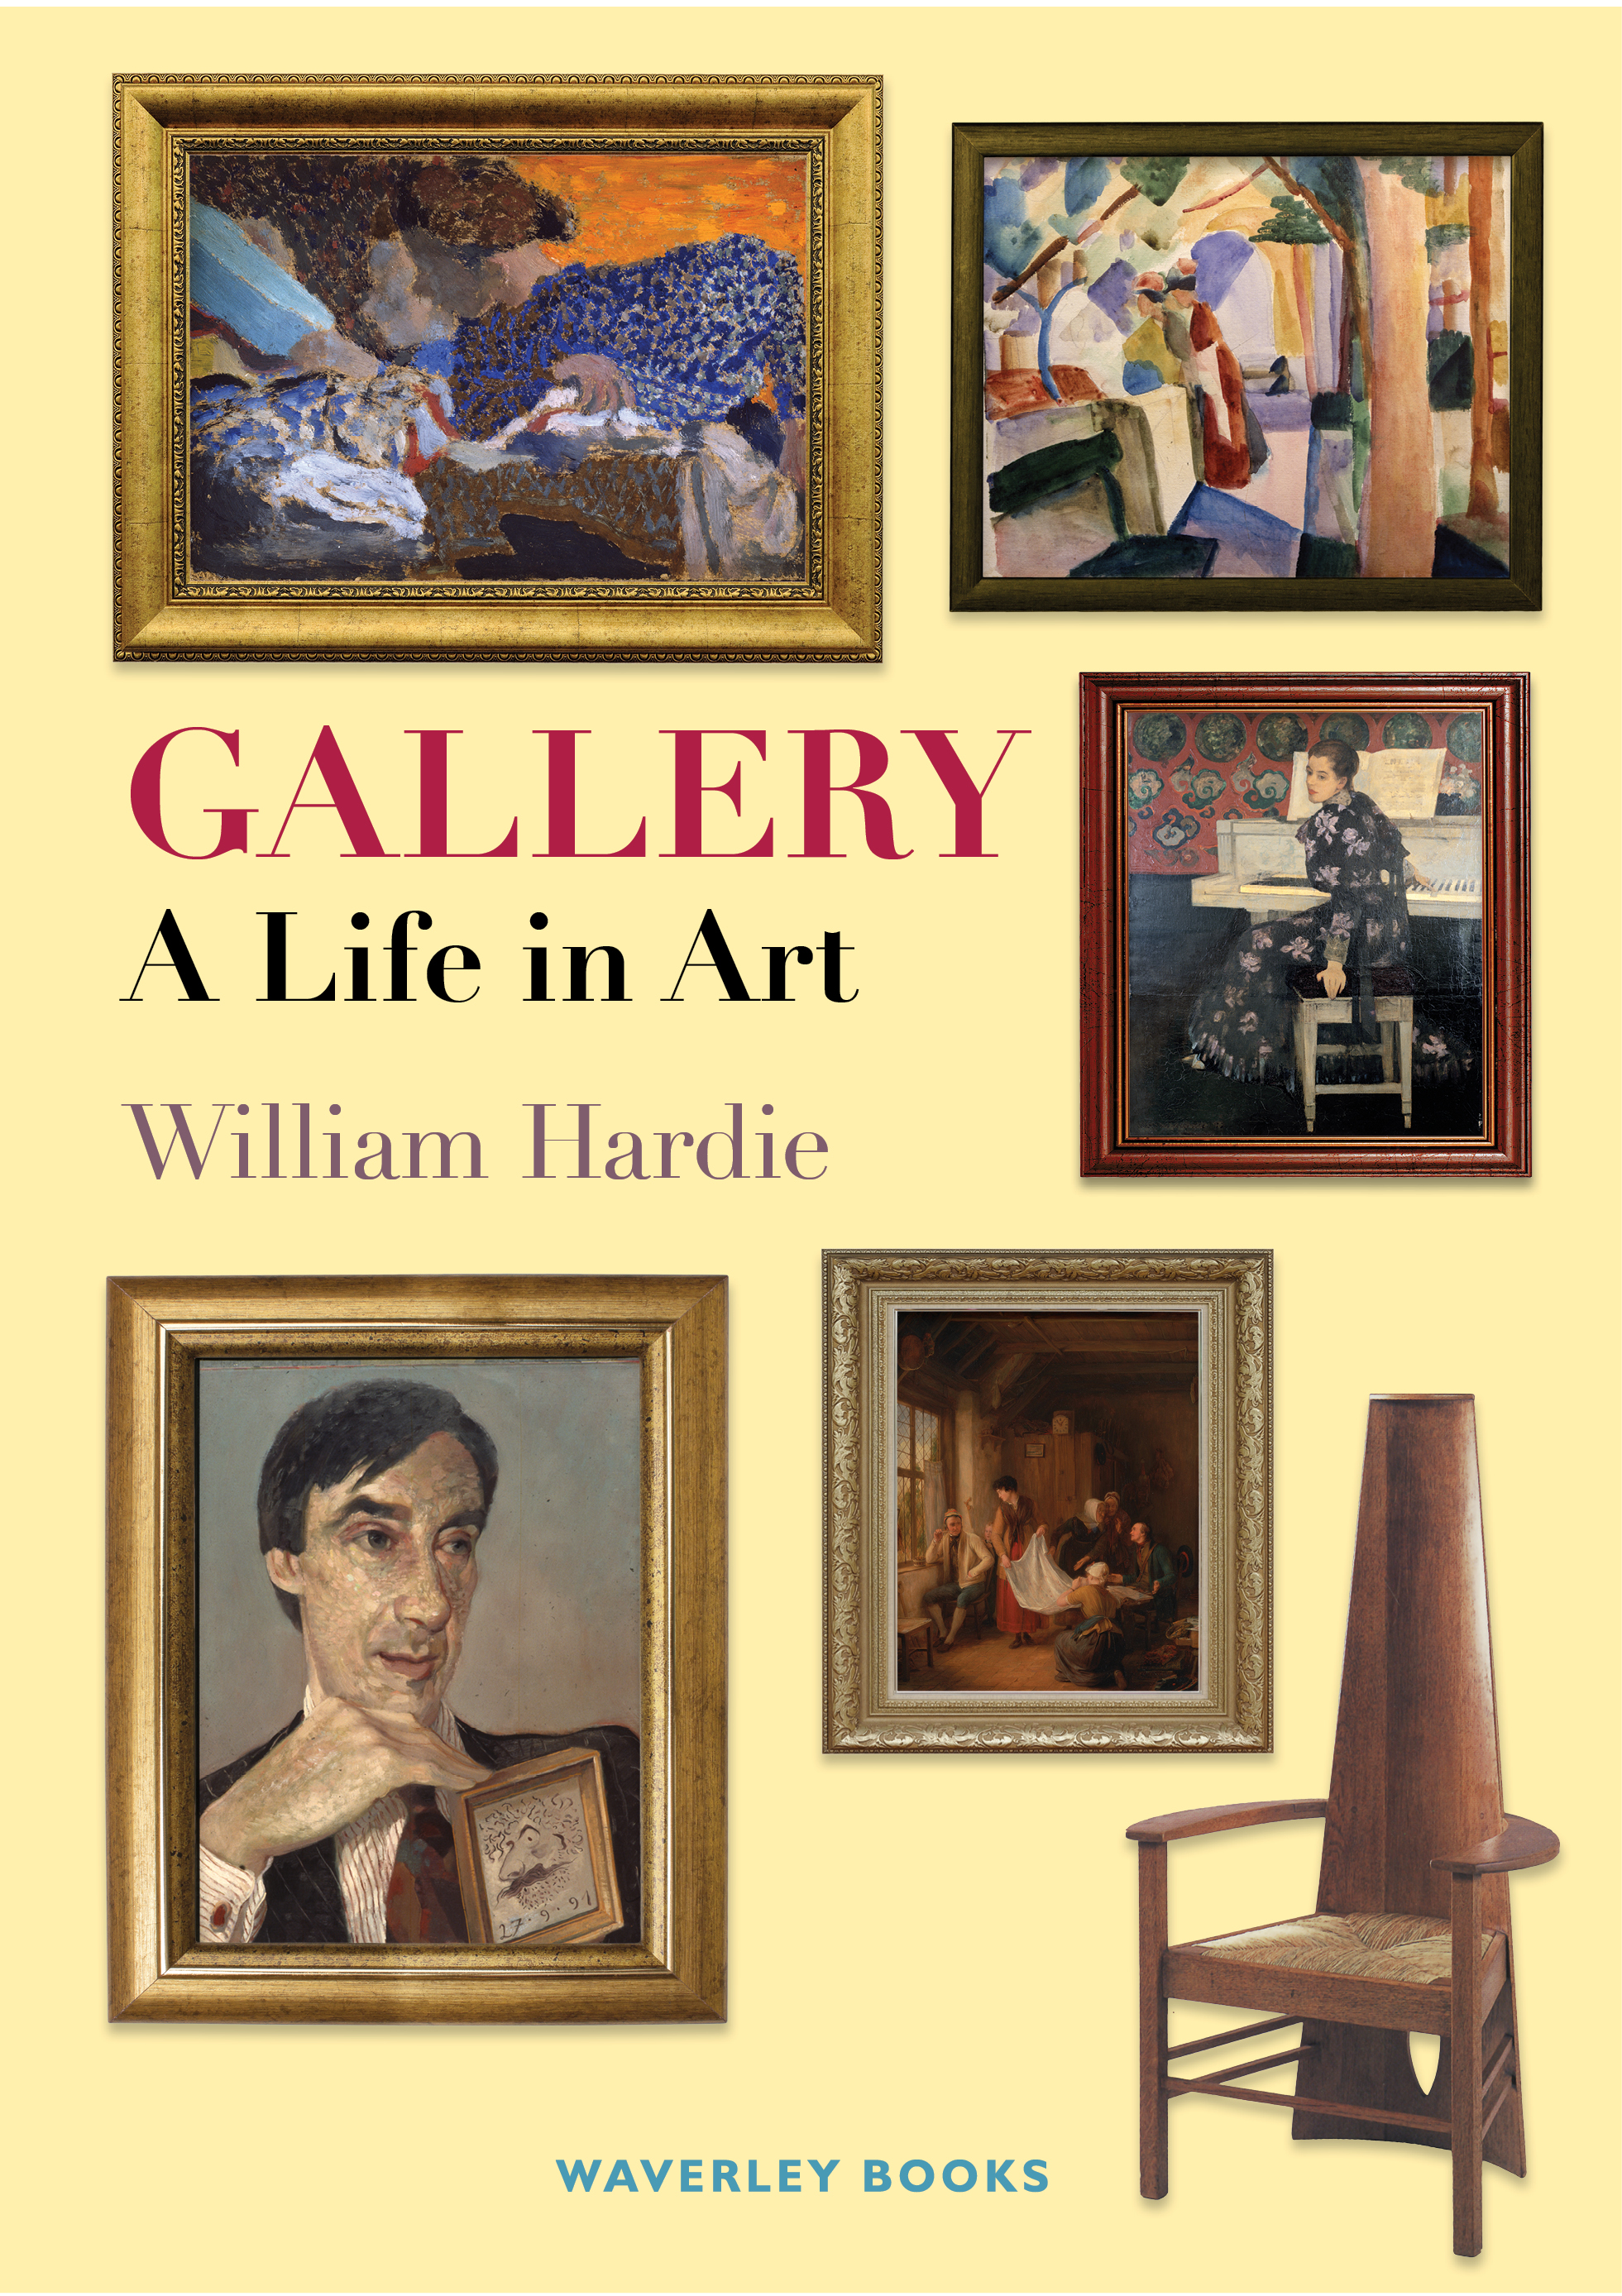 William Hardie's Life In Art